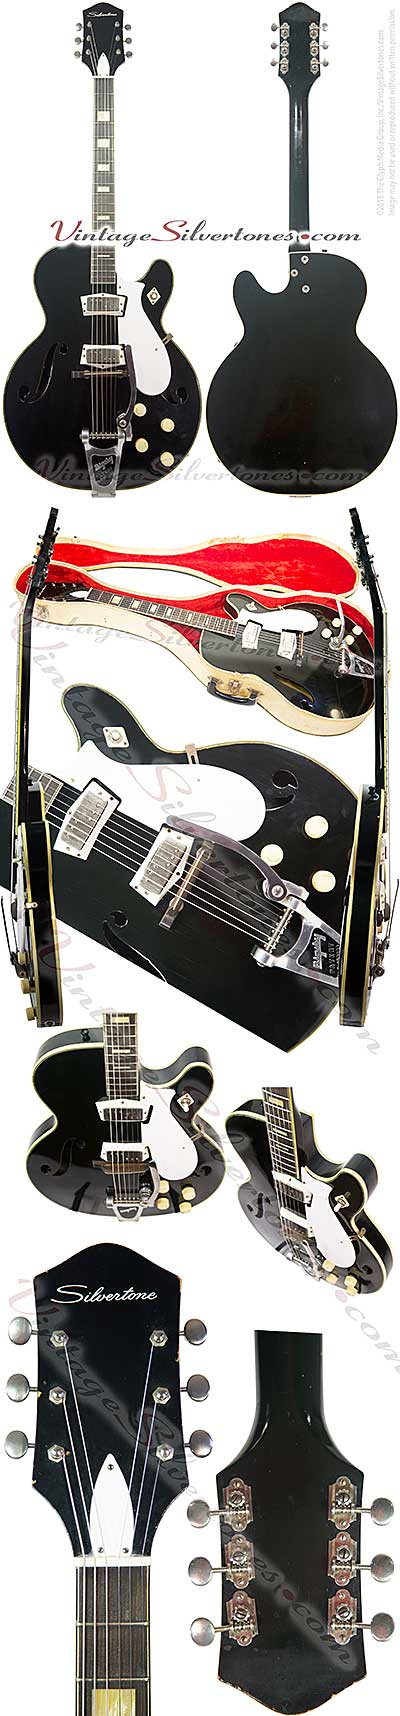 Silvertone 1446L made by Harmony of Chicago, two mini P90 pickups, electric guitar, semi-hollow body, black finish, white pickguard, made in 1965